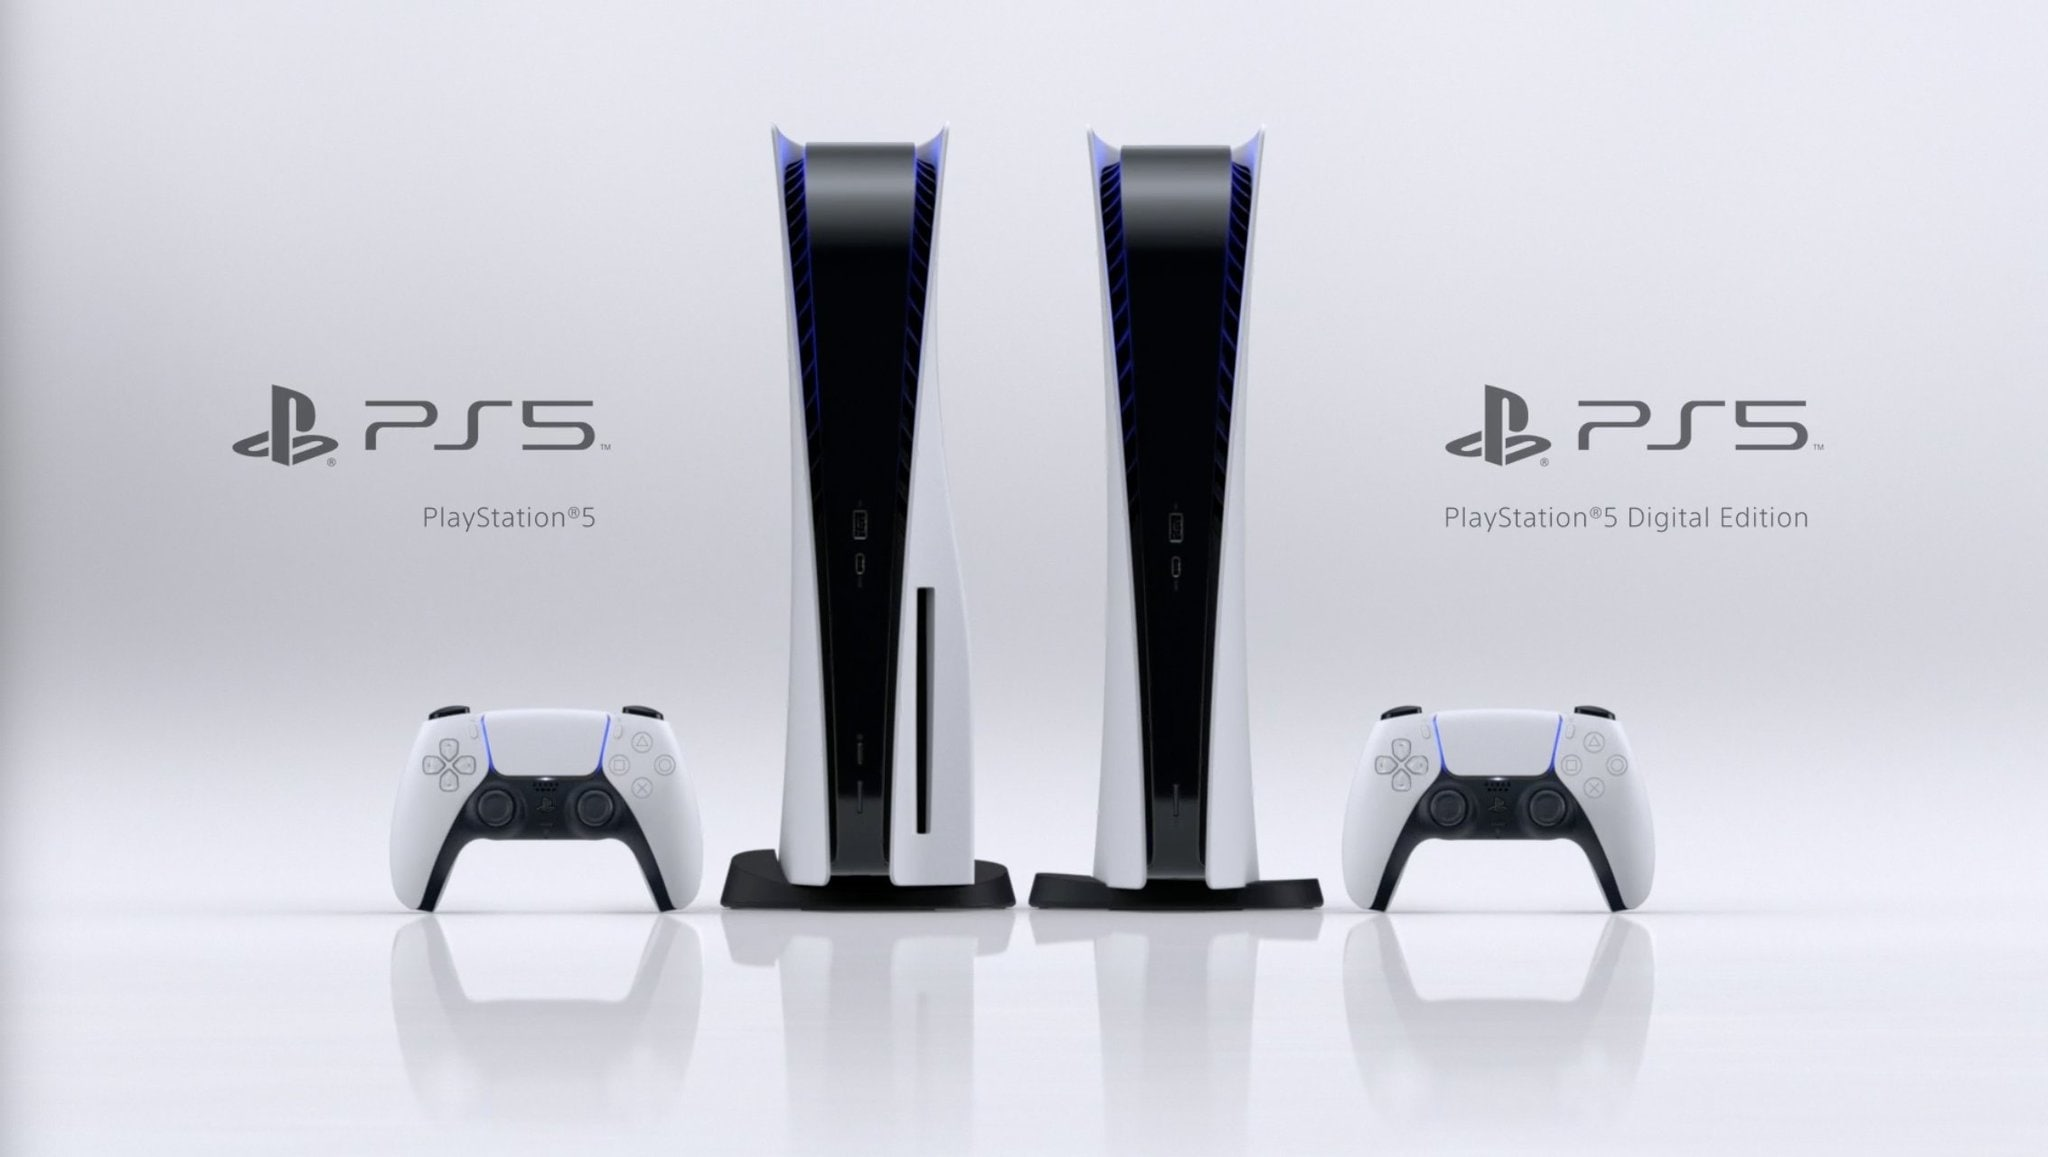 Sony unveiled its PlayStation 5 and PlayStation 5 Digital Edition gaming consoles on June 11, 2020.